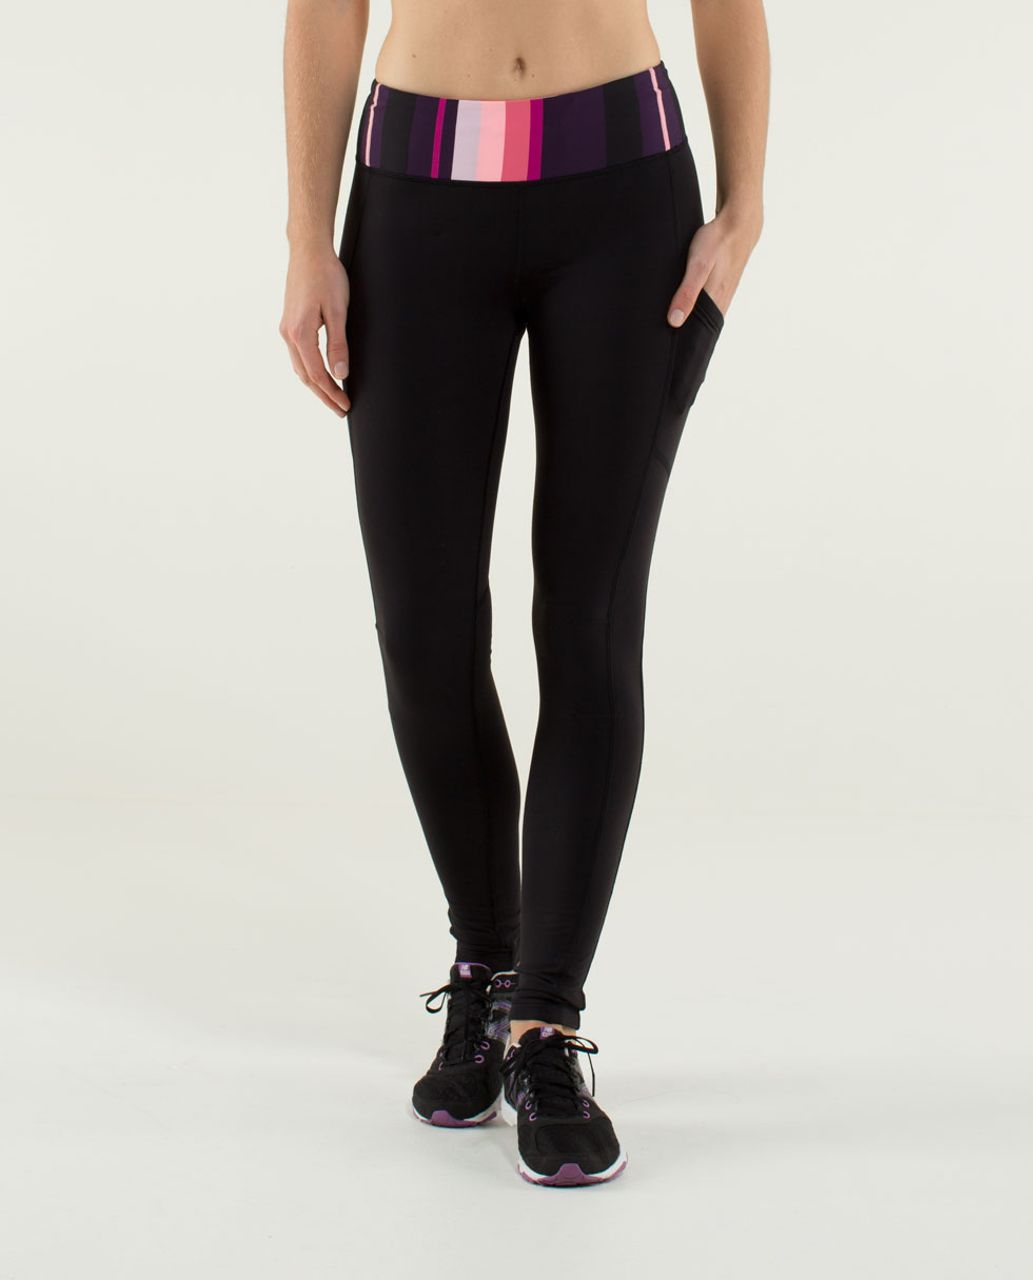 Lululemon Speed Tight *Tech - Black / Assorted Stripe Bleached Coral